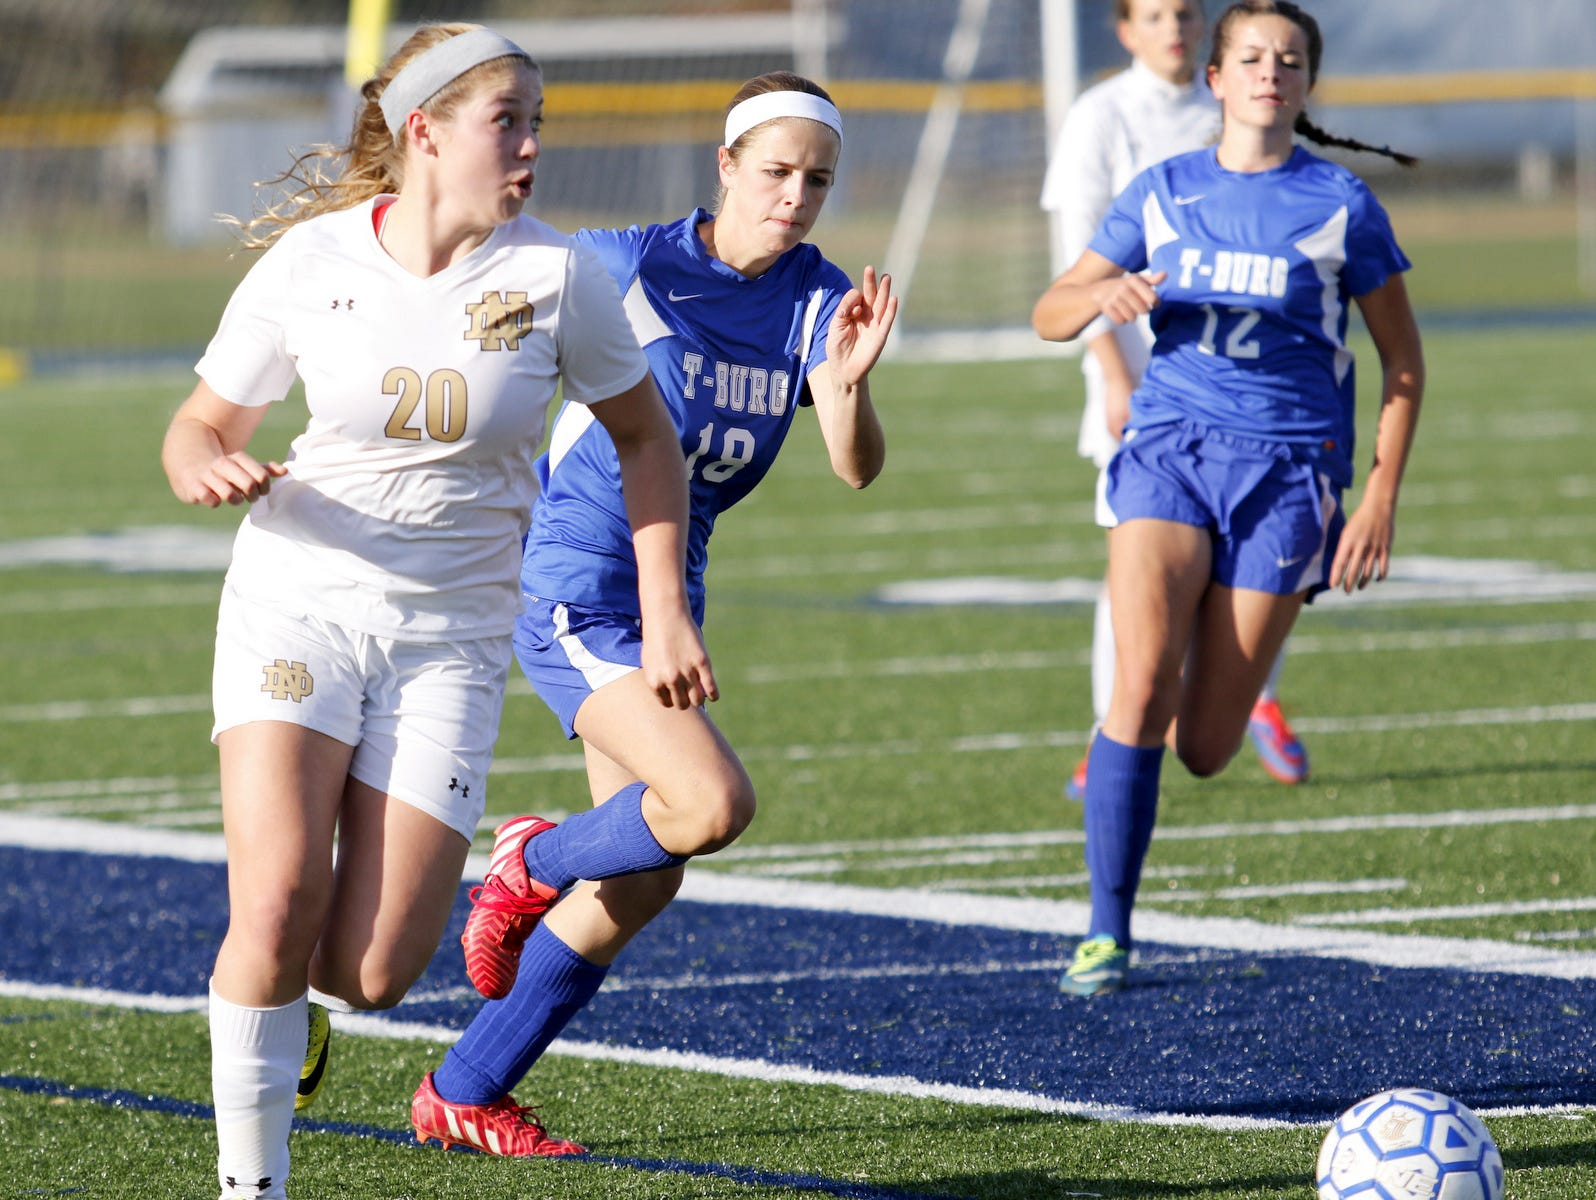 Notre Dame's Mia Herlan dribbles with the ball as two Trumansburg's Cassie Proctor, center, and Kelly Proctor, back, give chase Tuesday during a Section 4 Class C girls soccer semifinal at Brewer Memorial Stadium.